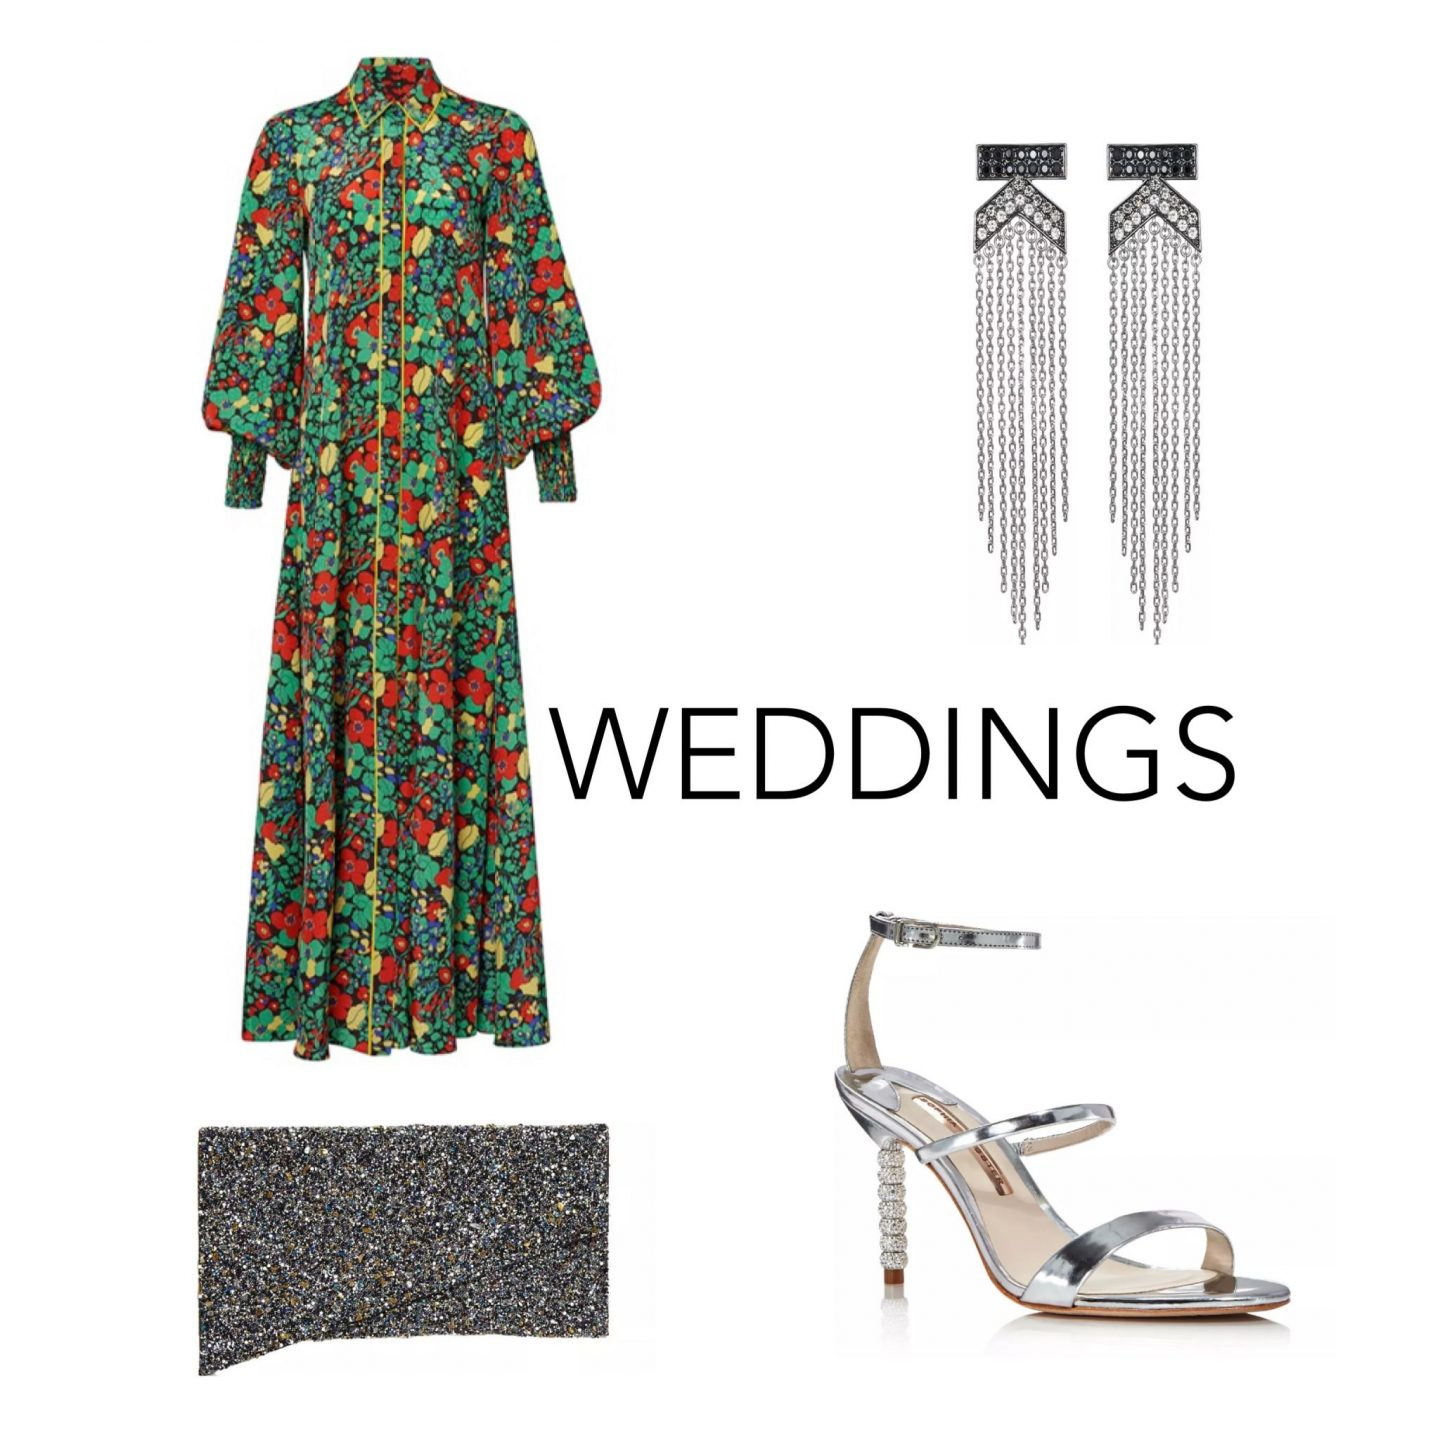 atlanta fashion and style blogger monica awe shows you how to style a floral maxi dress for wedding, floral button down maxi dress, silver statement earrings, silver sandals, metallic clutch